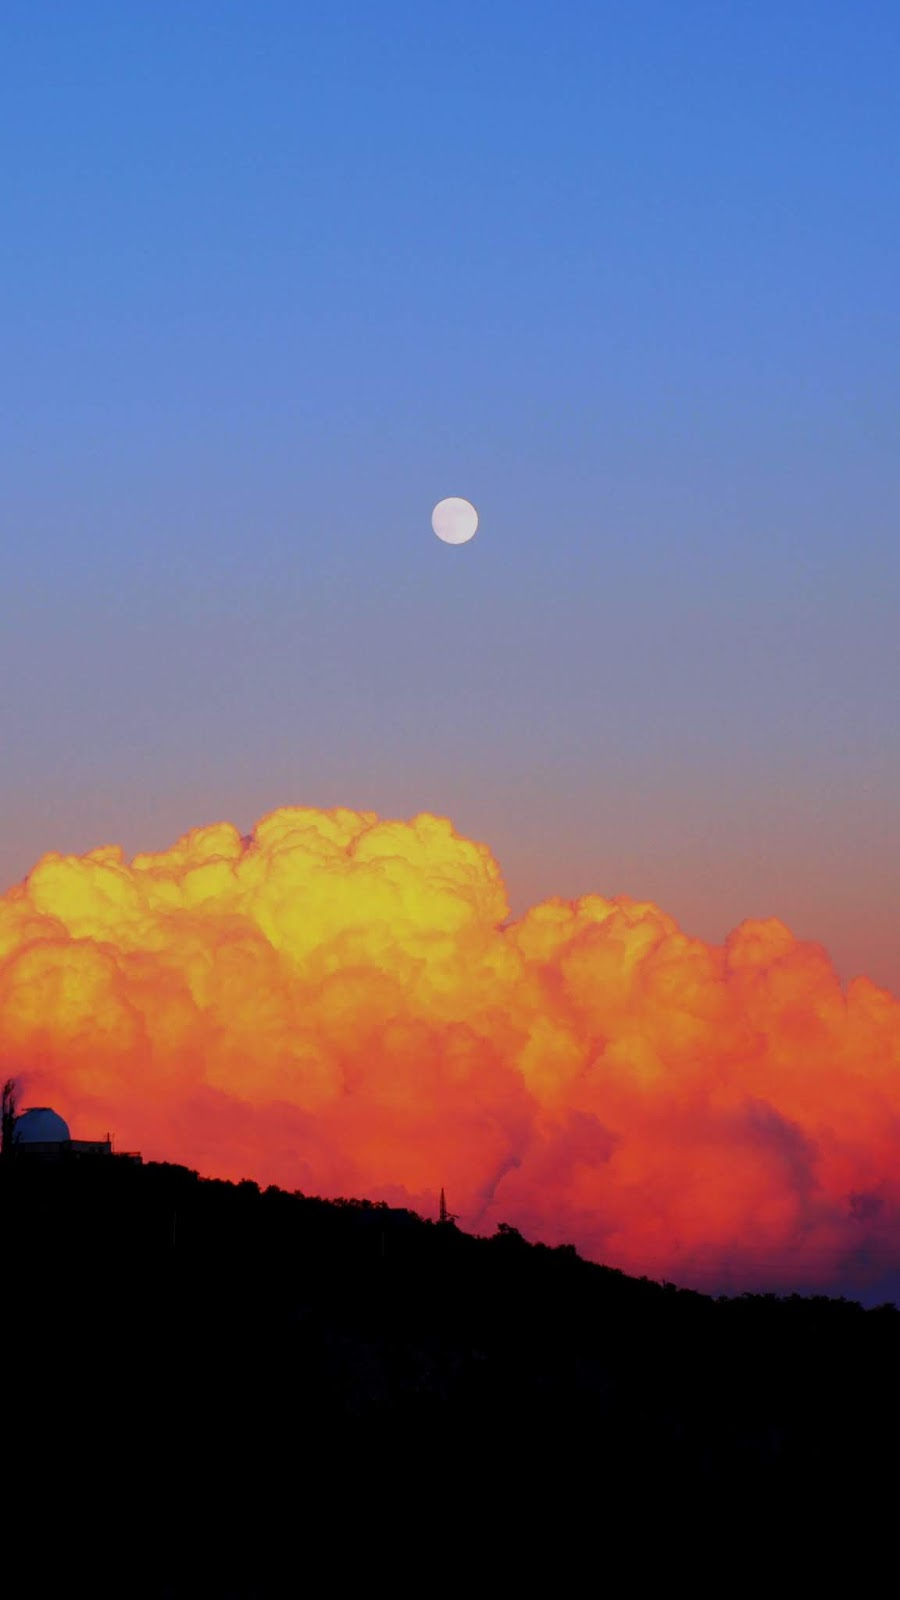 moon in cloudy sunset